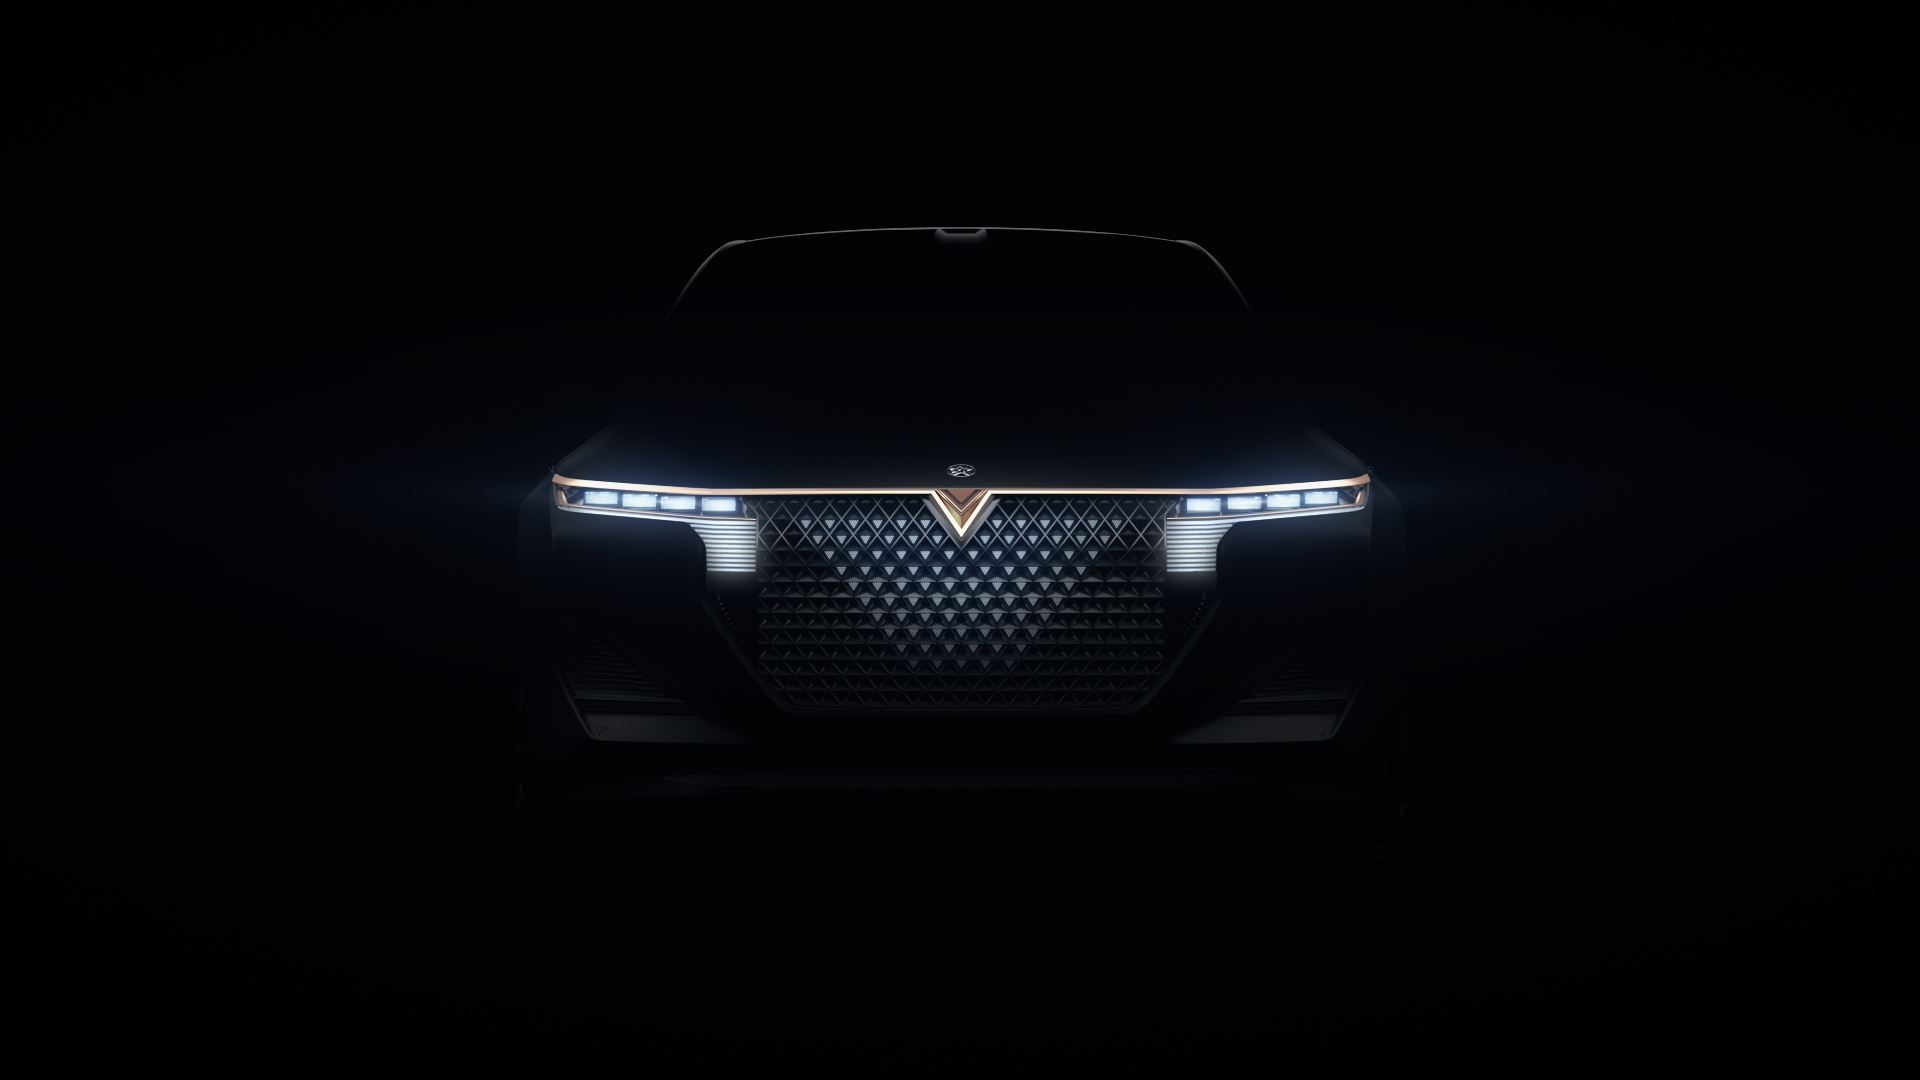 Based on the teaser image provided, the new car is smaller than The X Concept